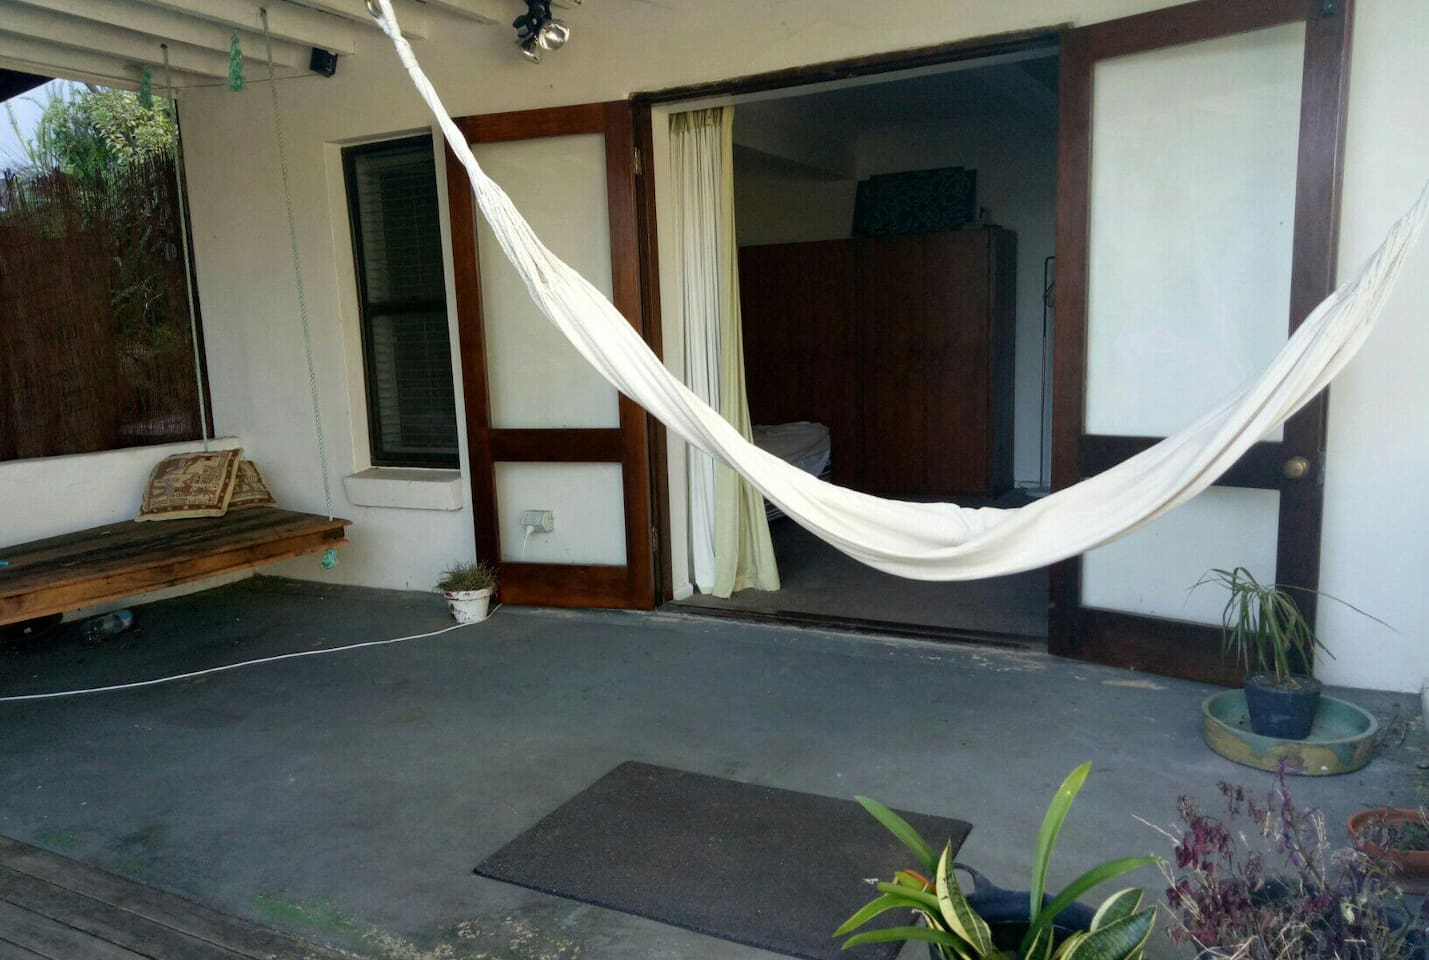 Outdoor patio area with hammock and hanging bed.